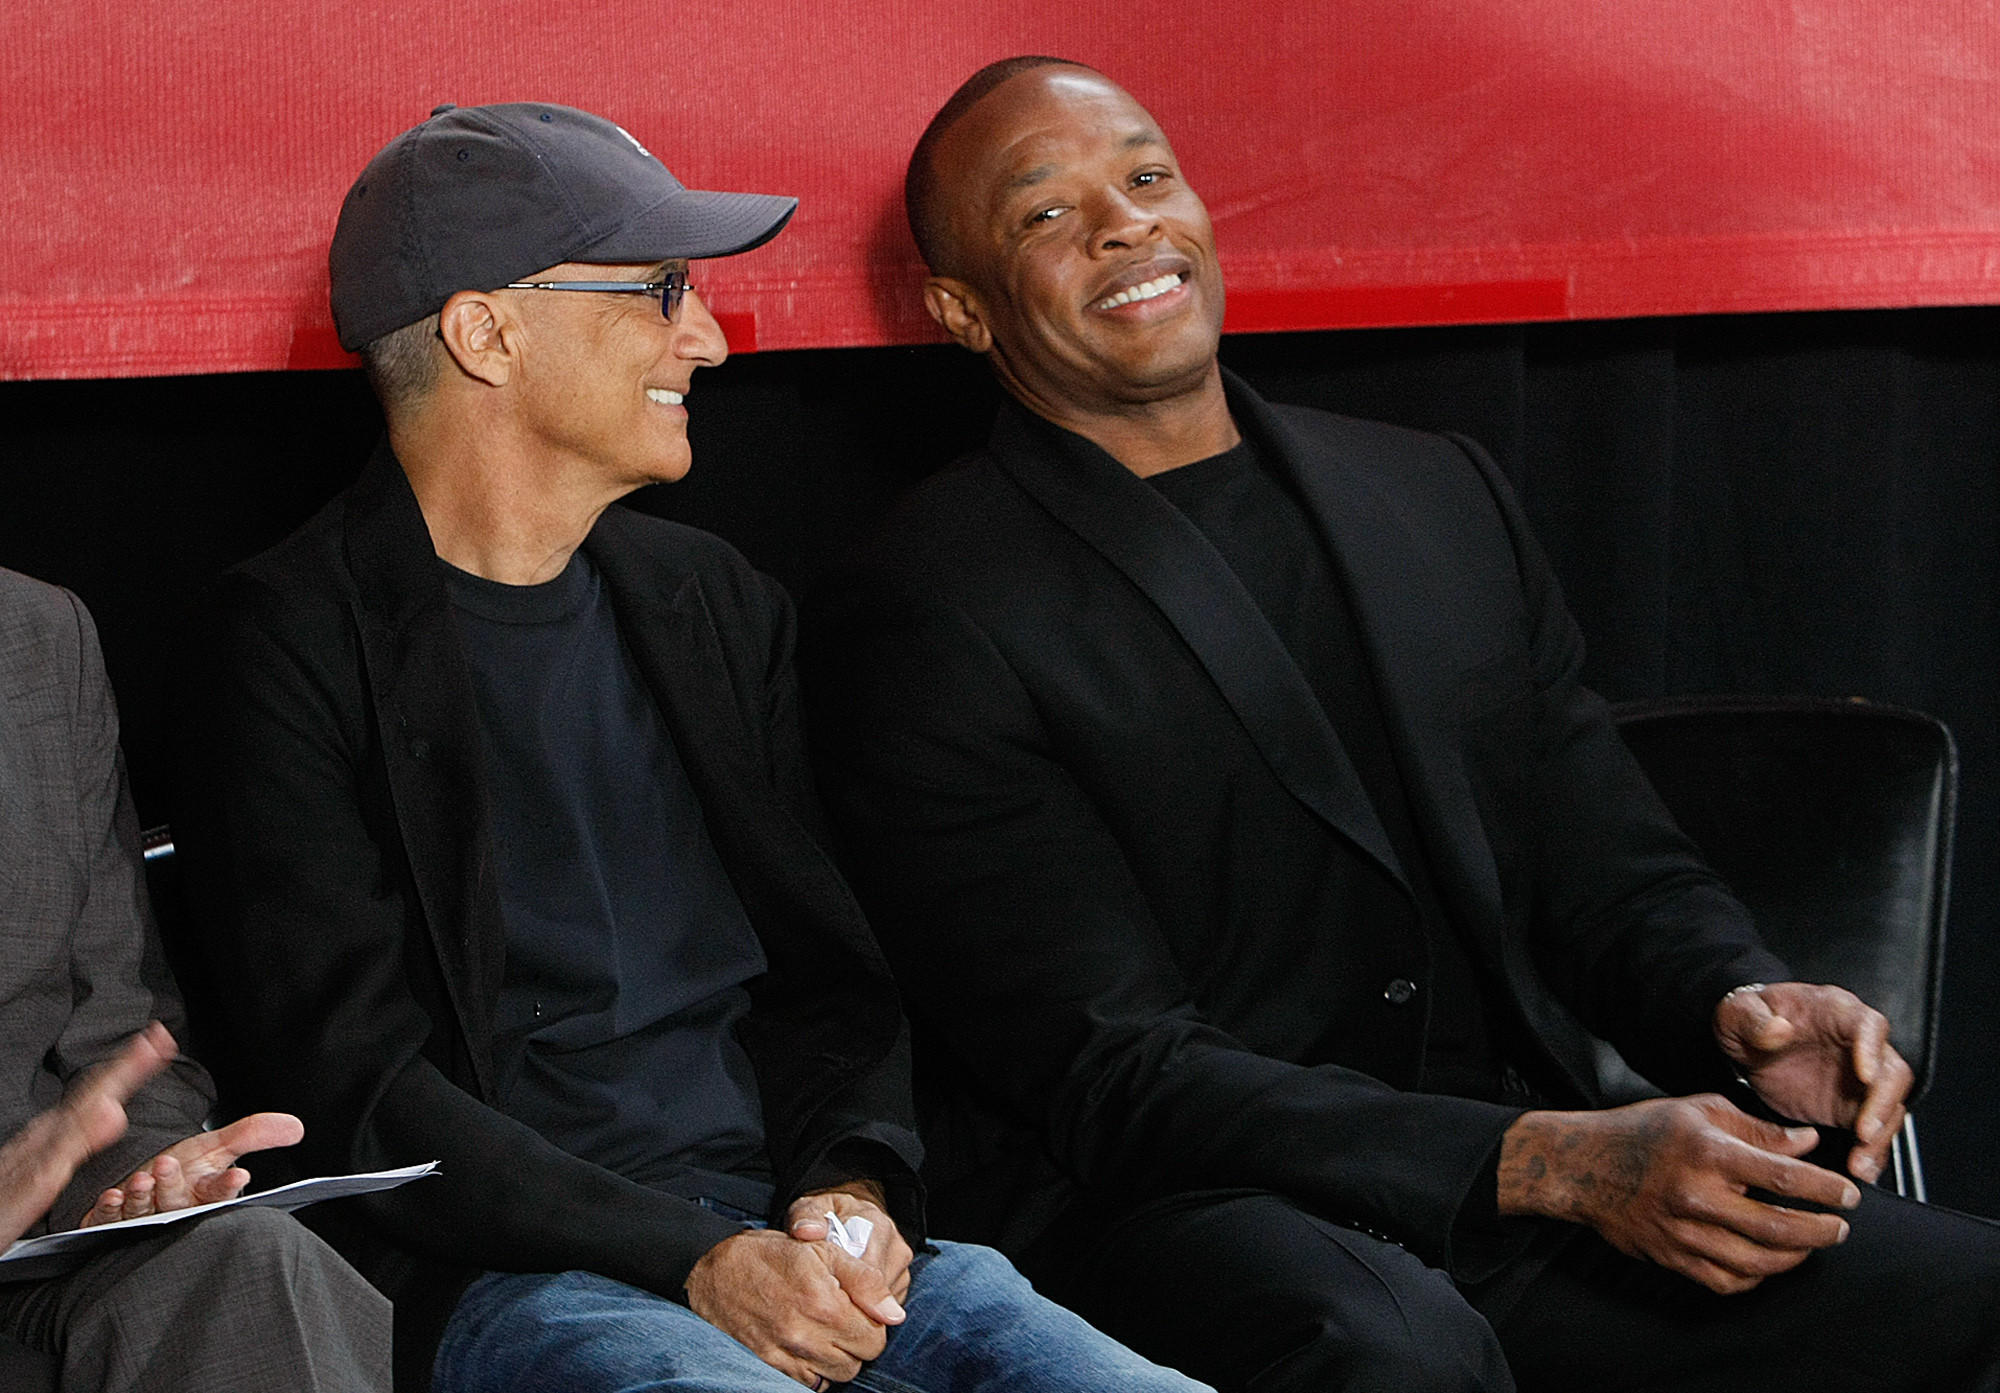 Music mogul Jimmy Iovine, left, and rapper Dr. Dre are all smiles during an announcement in Santa Monica in 2013 that they were giving $70 million to create the USC Jimmy Iovine and Andre Young Academy for Arts, Technology and the Business of Innovation.